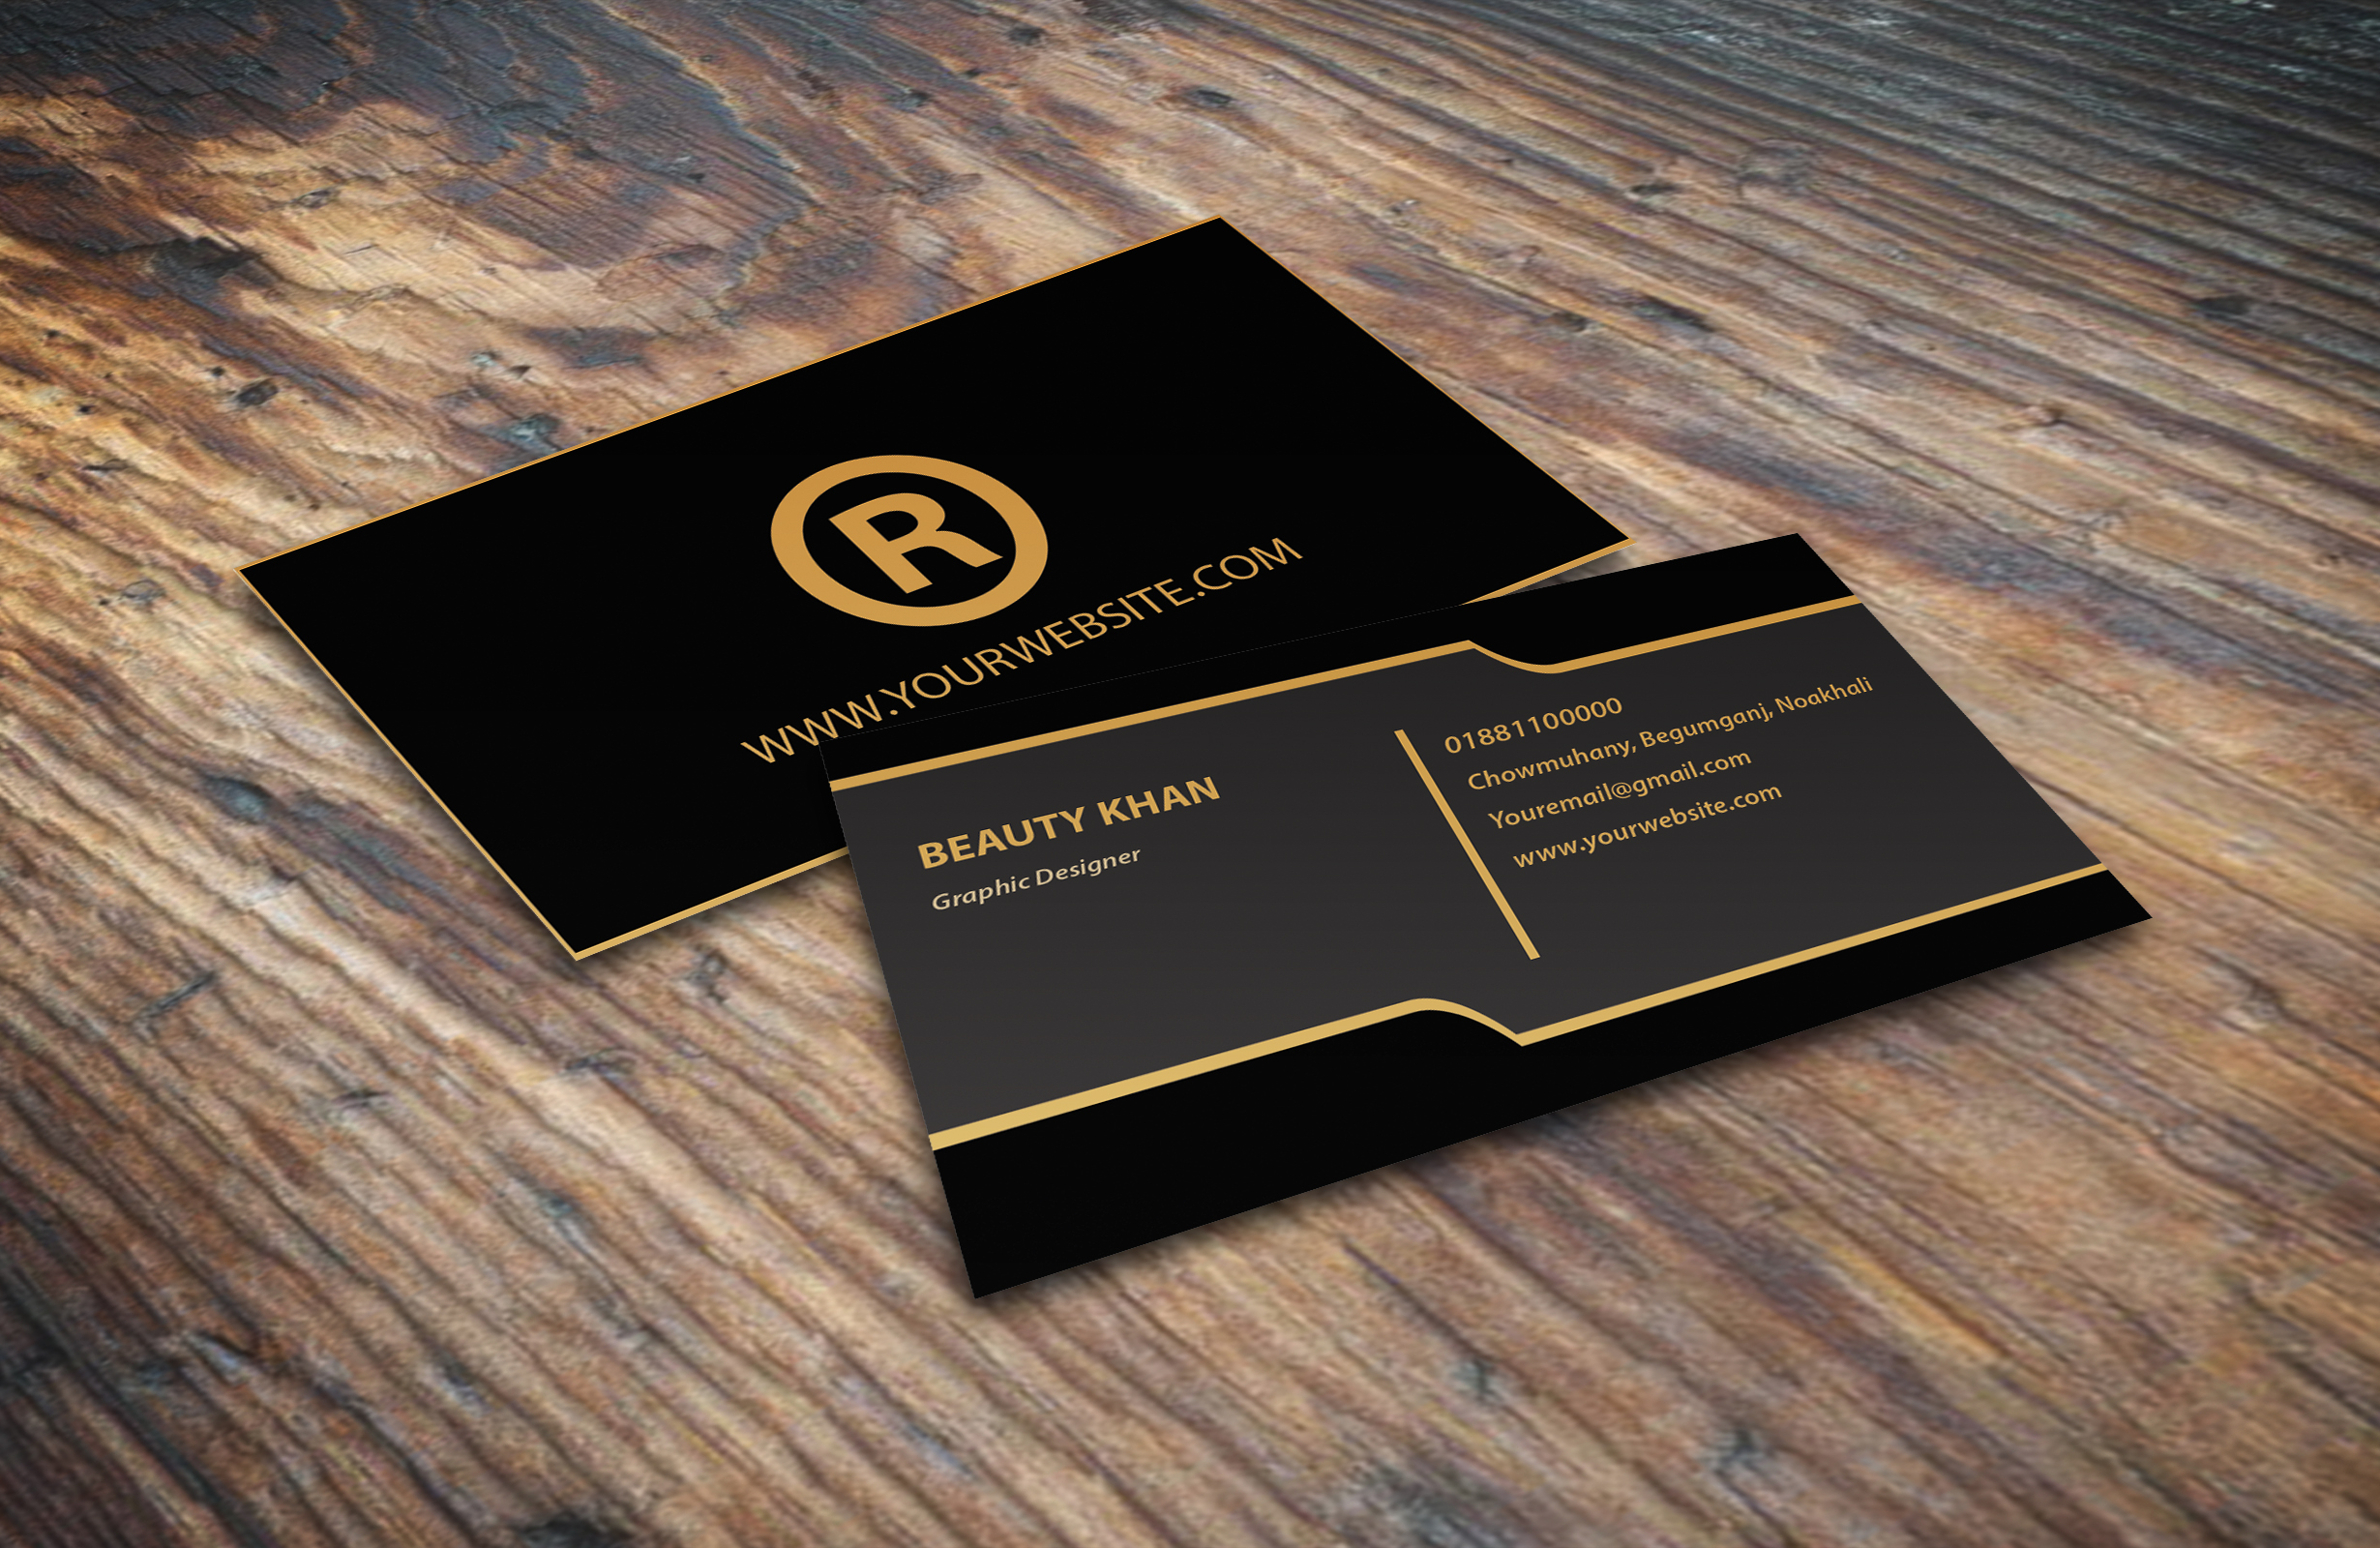 I will design an amazing business card for you